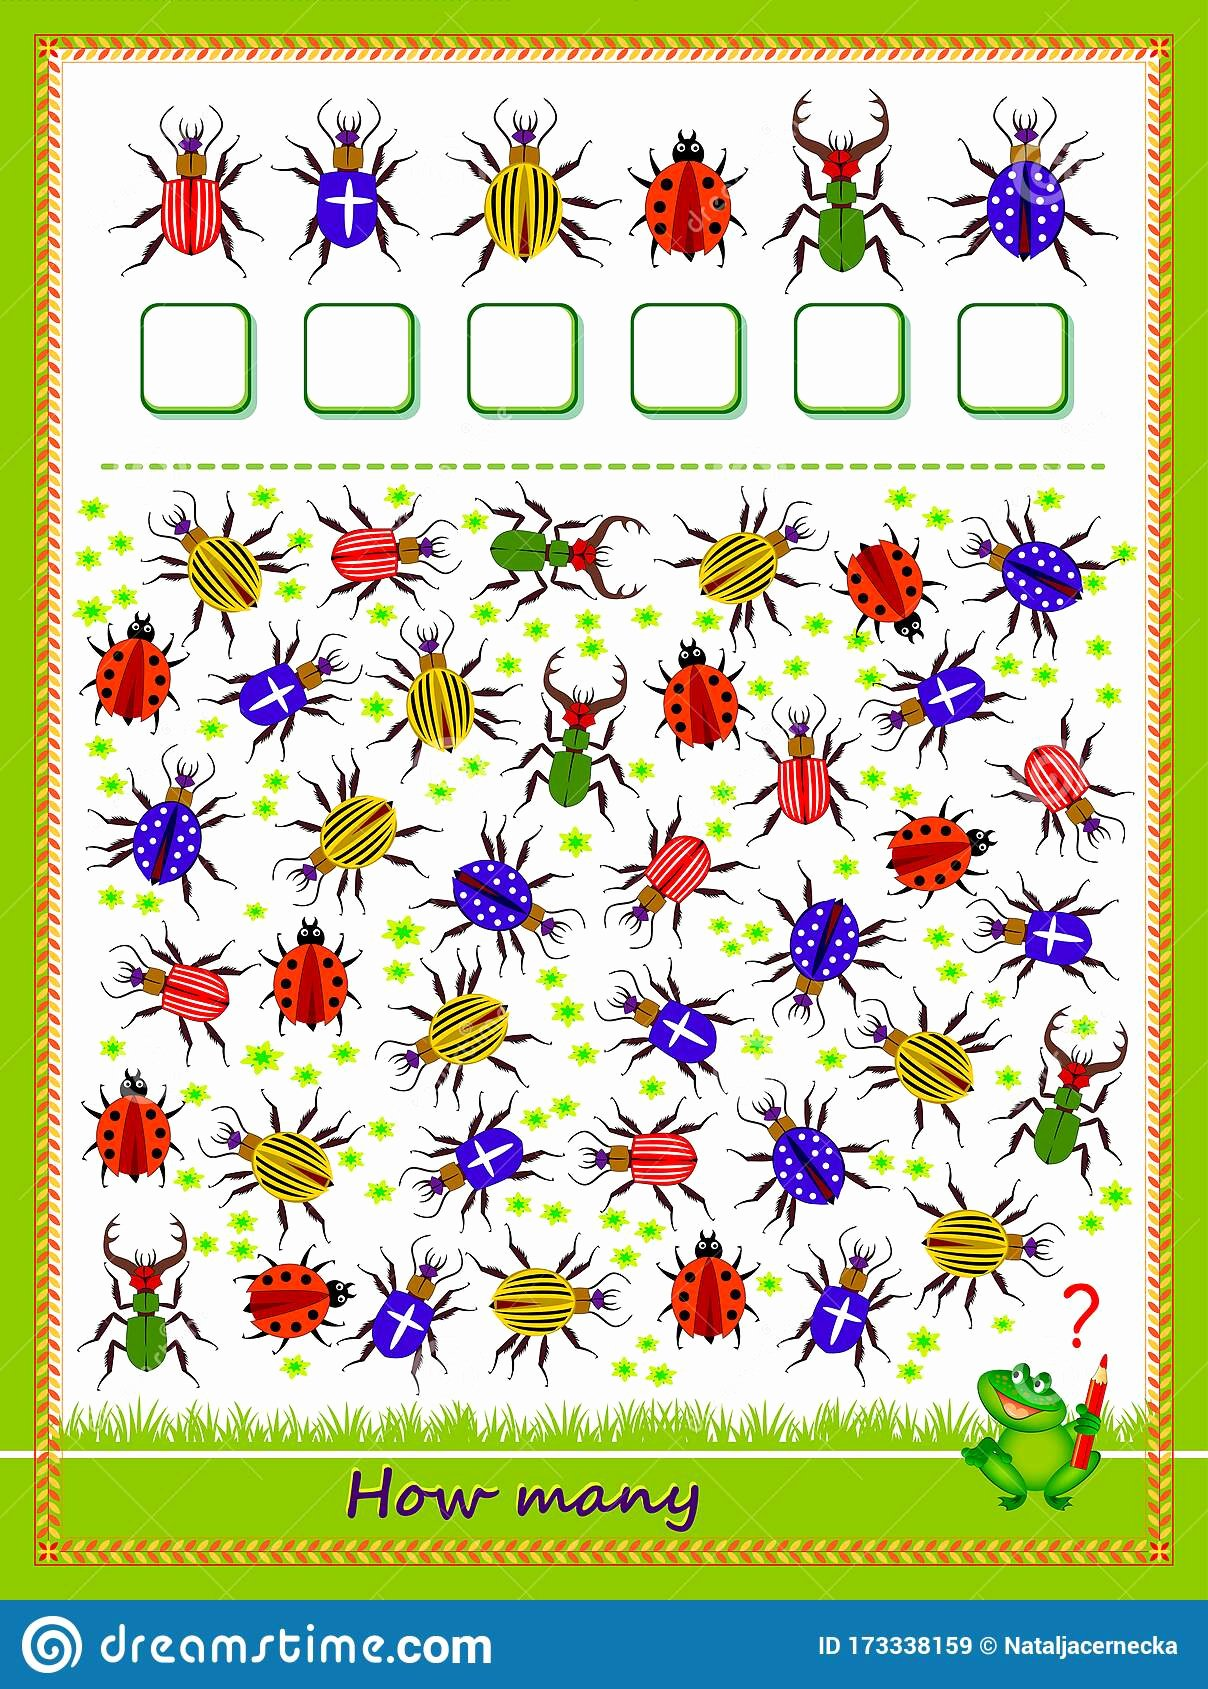 Counting Bugs Worksheets for Preschoolers Inspirational Math Education for Children Count Quantity Bugs and